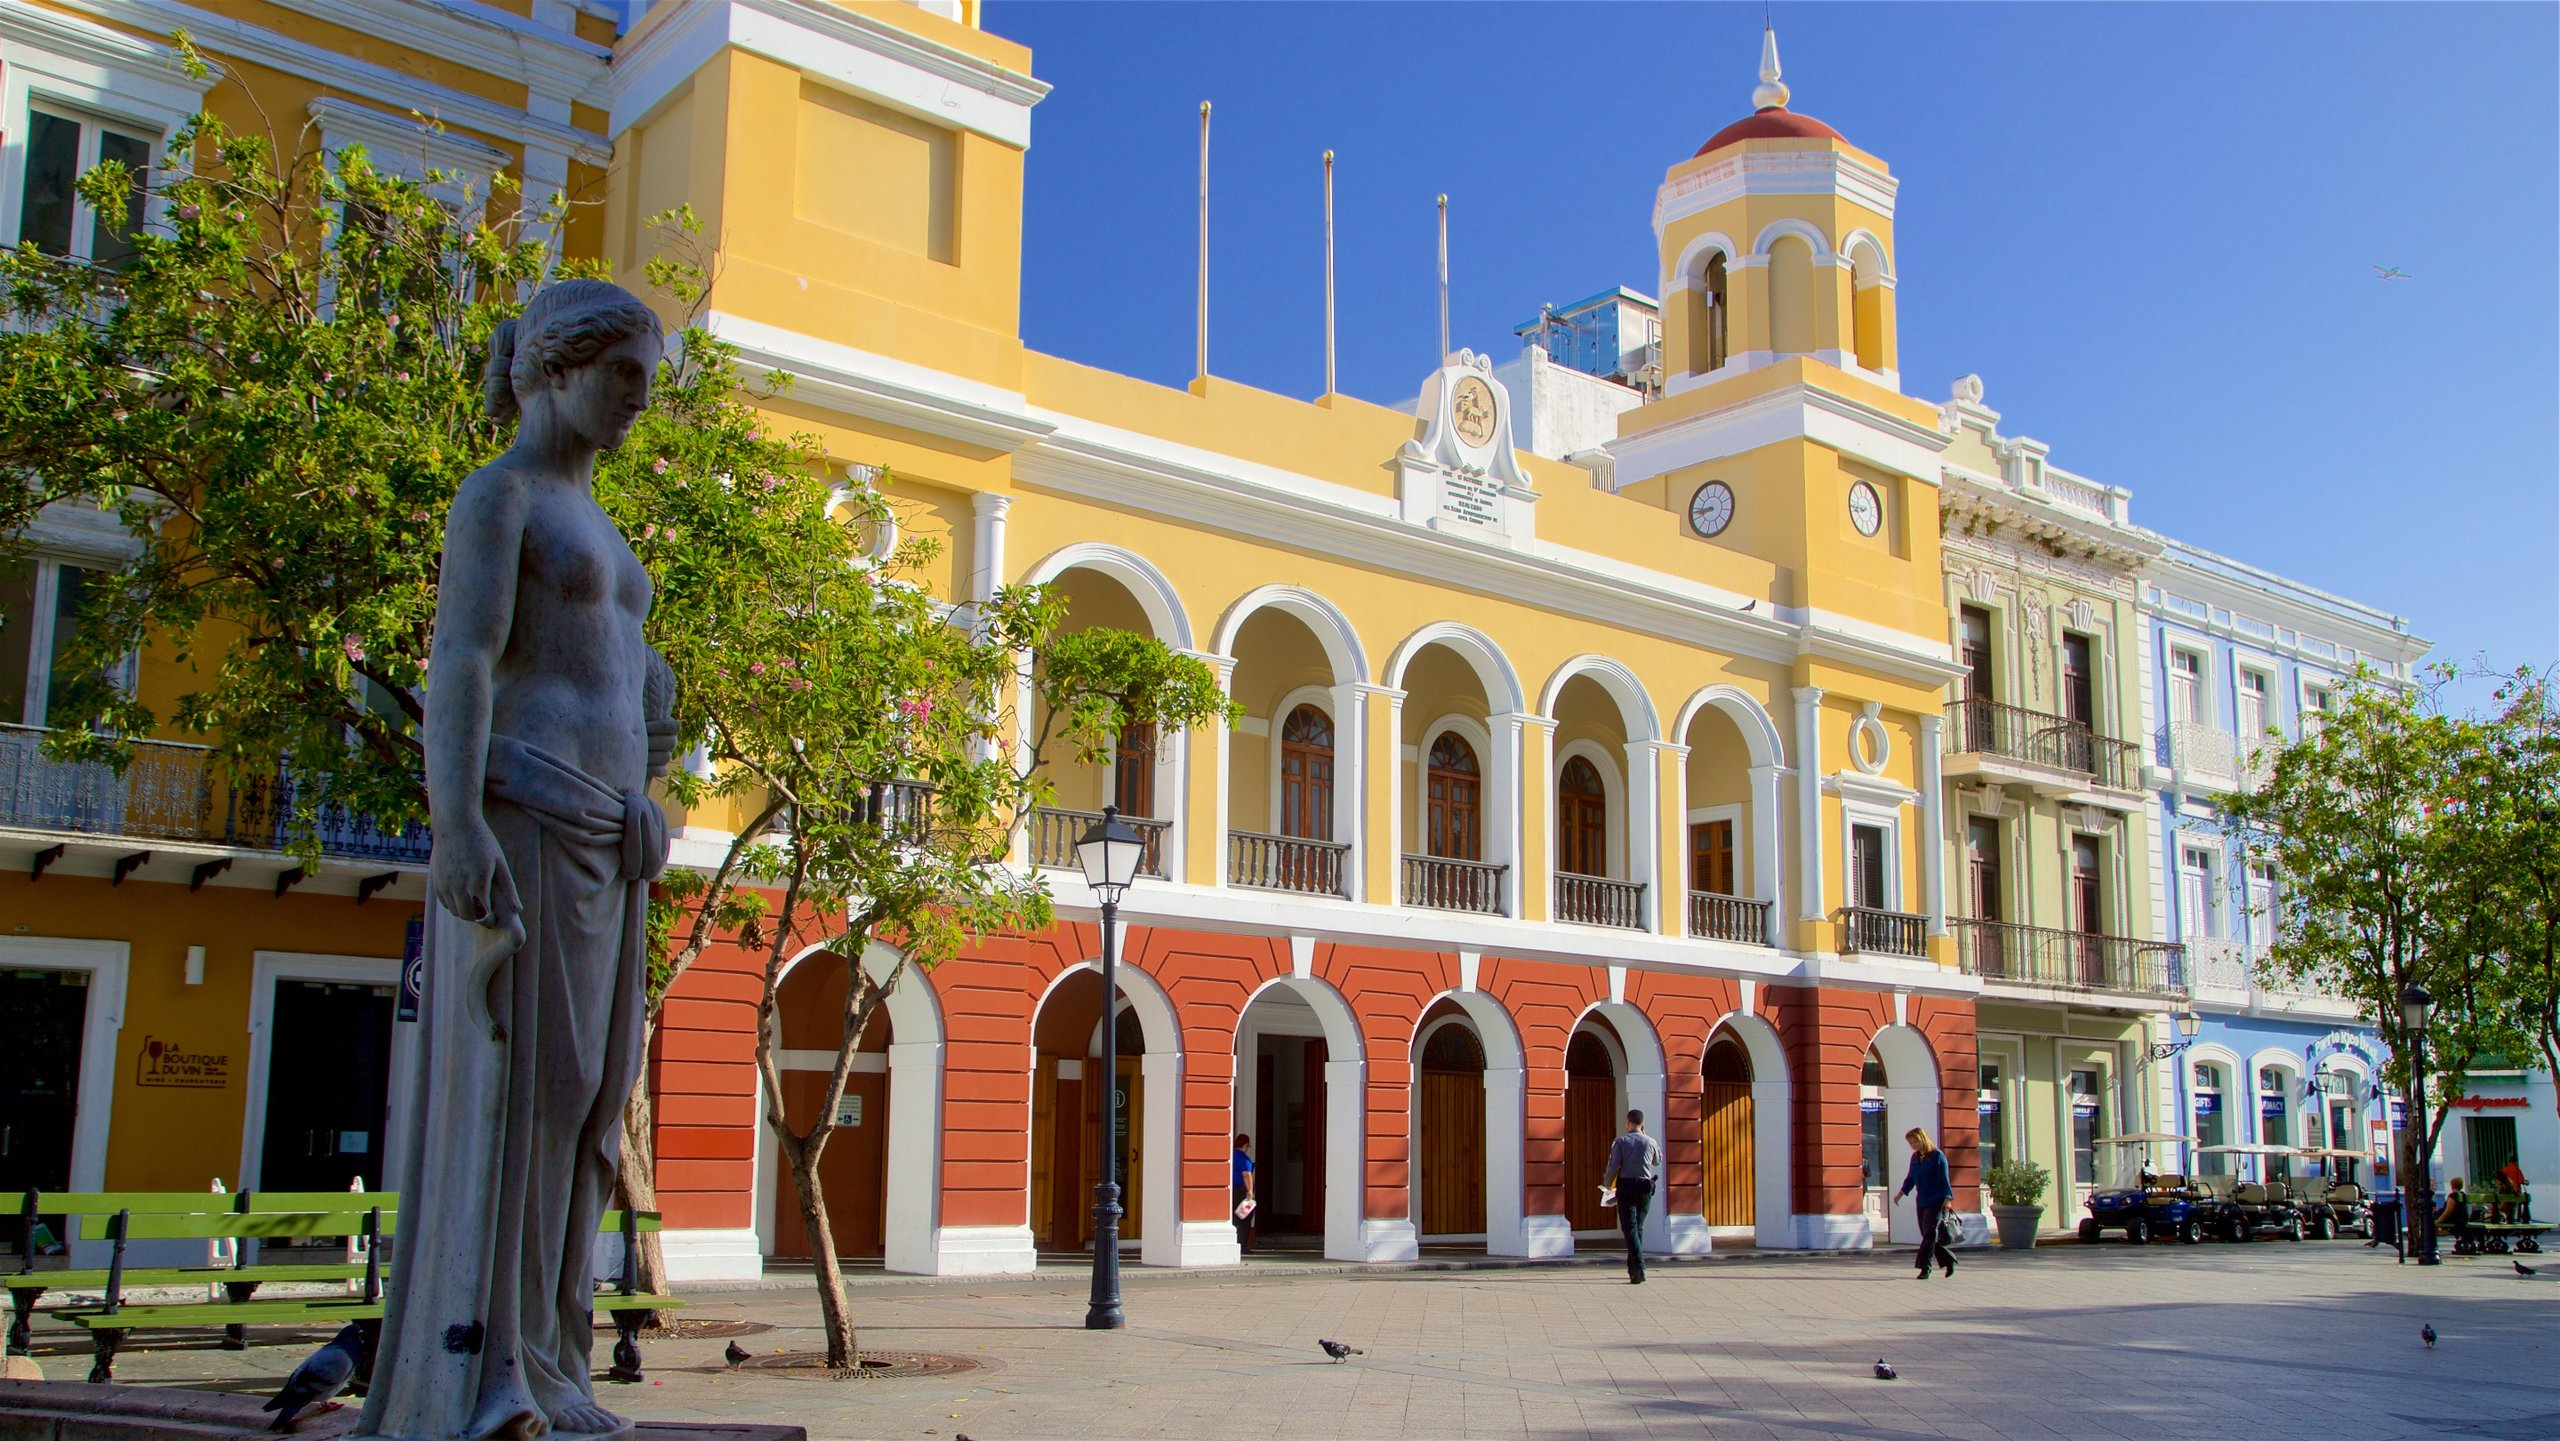 San Juan, Puerto Rico Hotels from $100! - Cheap Hotel Deals